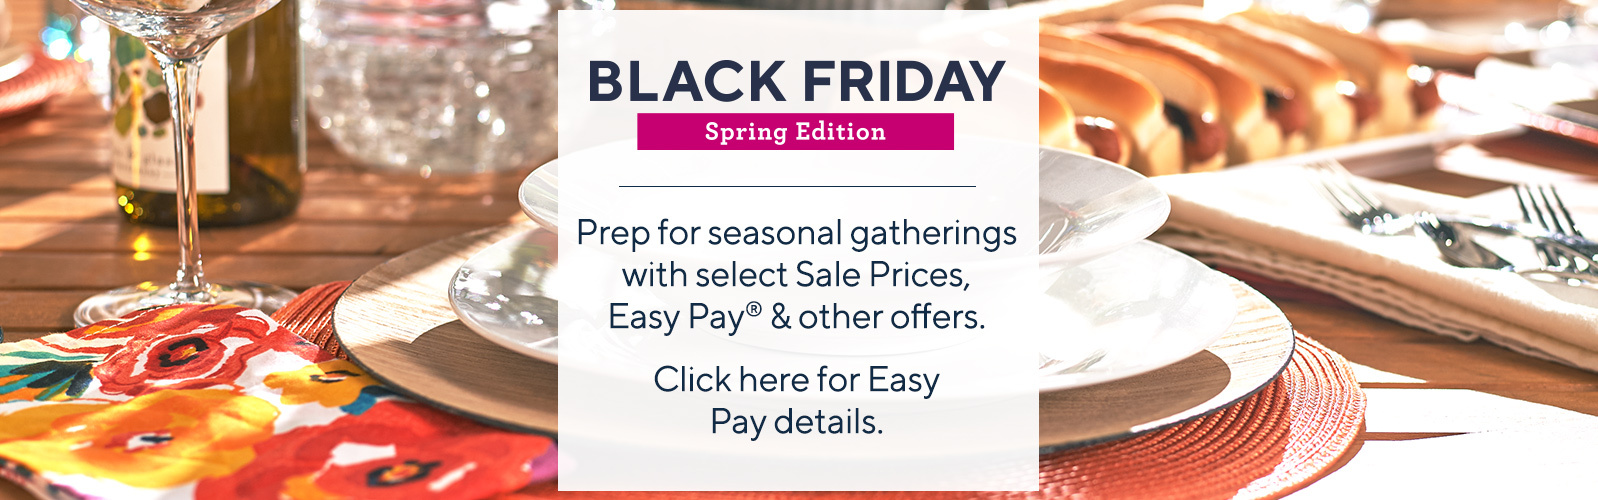 Spring Black Friday  Prep for seasonal gatherings with select Sale Prices, Easy Pay® & other offers.  Click here for Easy Pay details